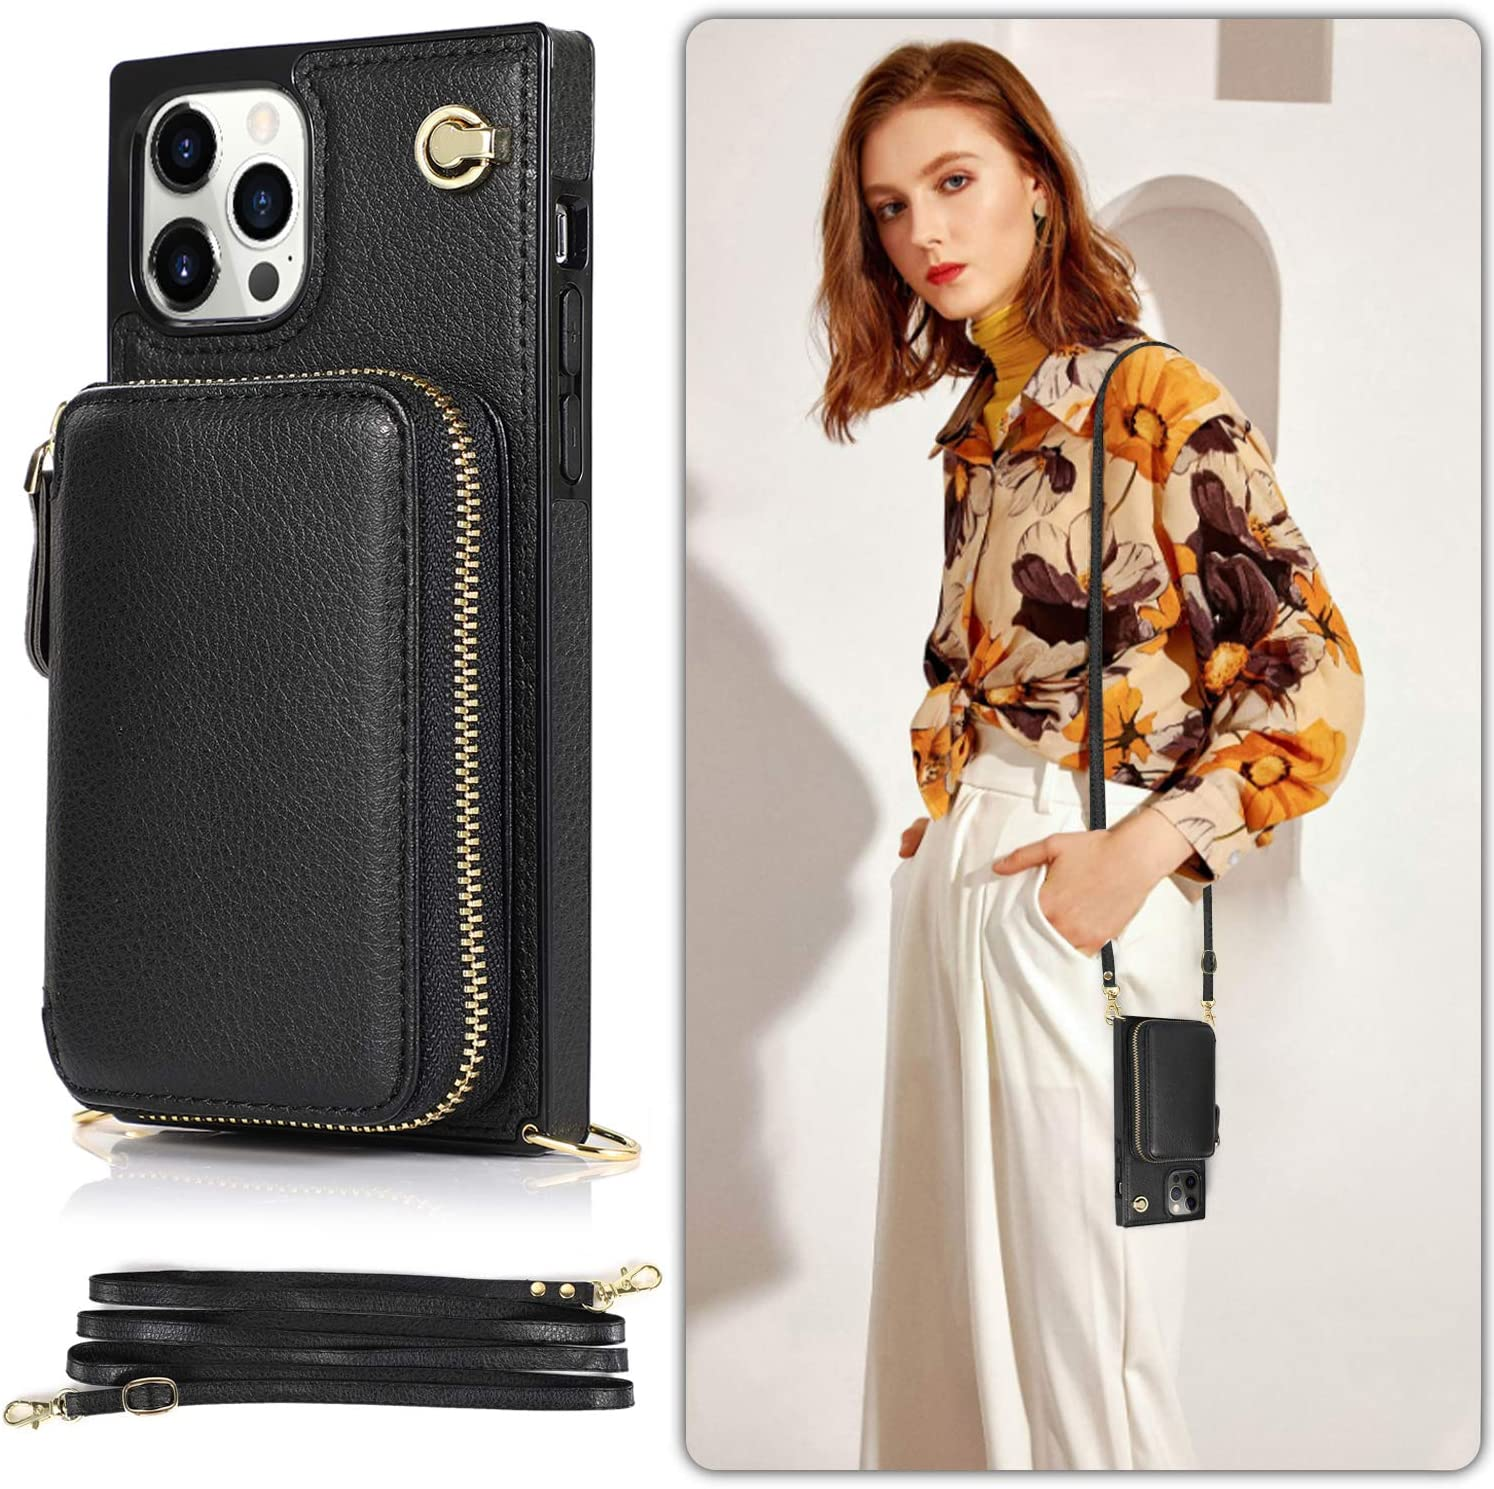 LUVI Wallet Card Holder for iPhone 12/iPhone 12 Pro 6.1 inch Case with Crossbody Neck Strap Lanyard Purse Handbag Shoulder Strap Protection Cover PU Leather Kickstand Stand Case Black